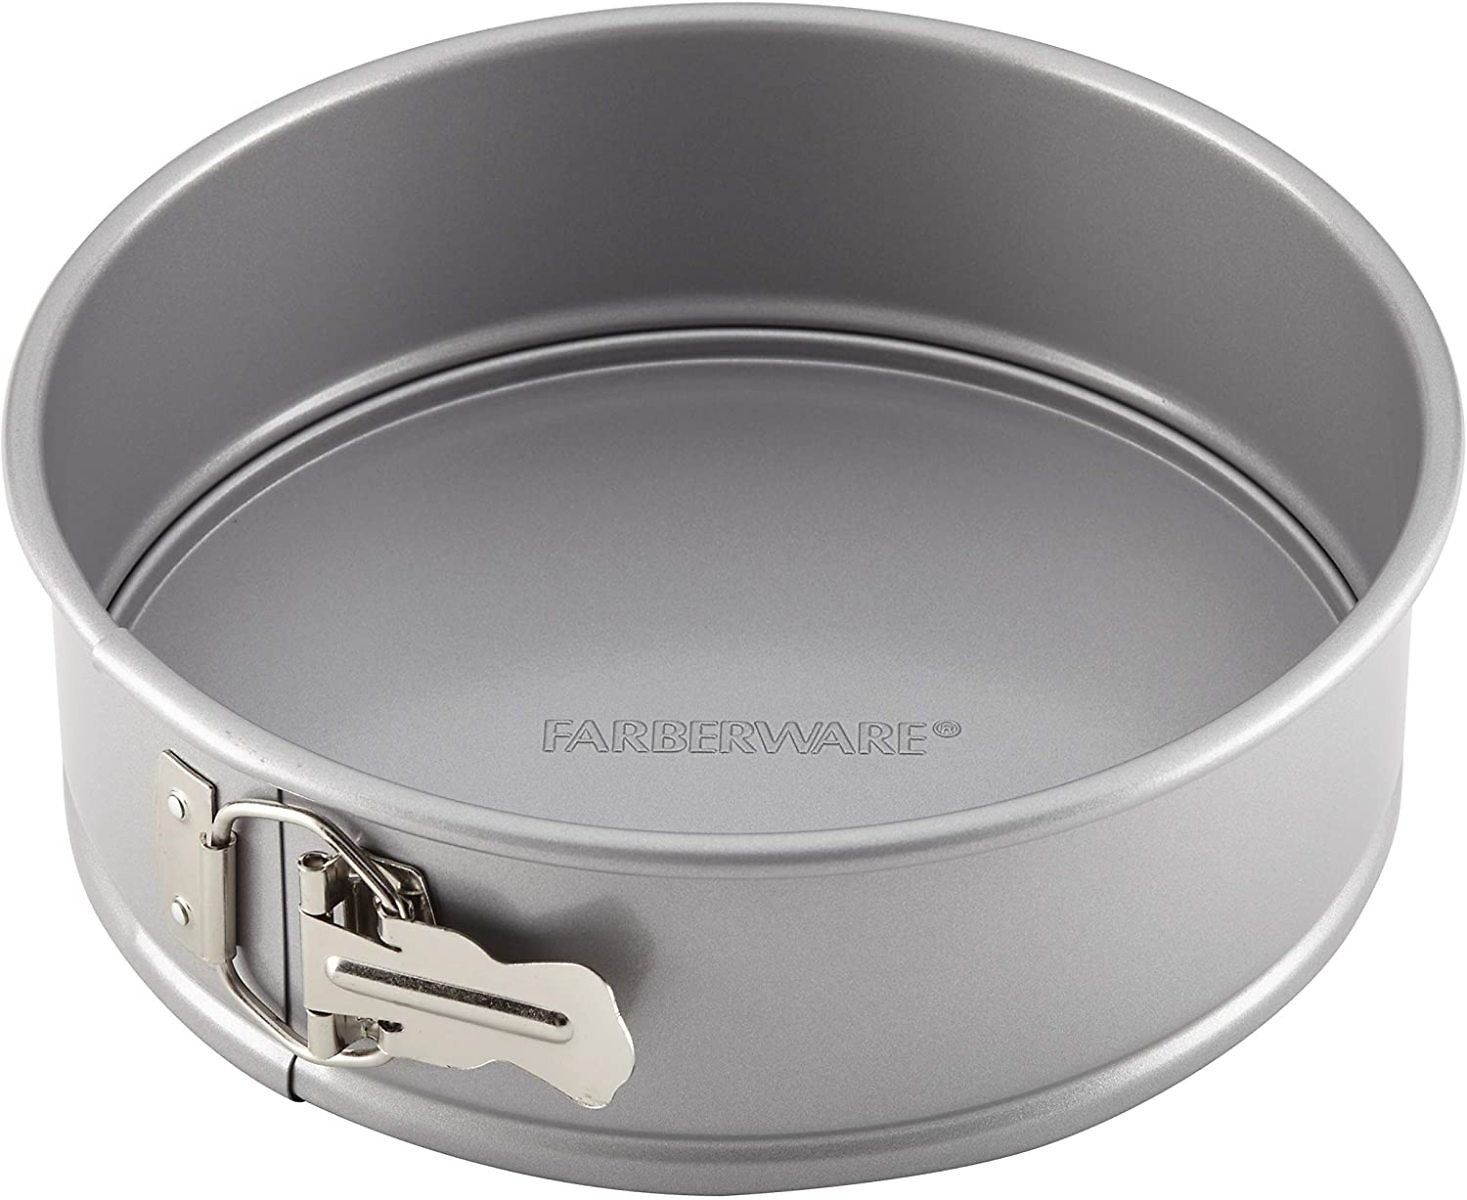 Farberware Nonstick Bakeware Nonstick Springform Baking Pan - 9 Inch, Gray